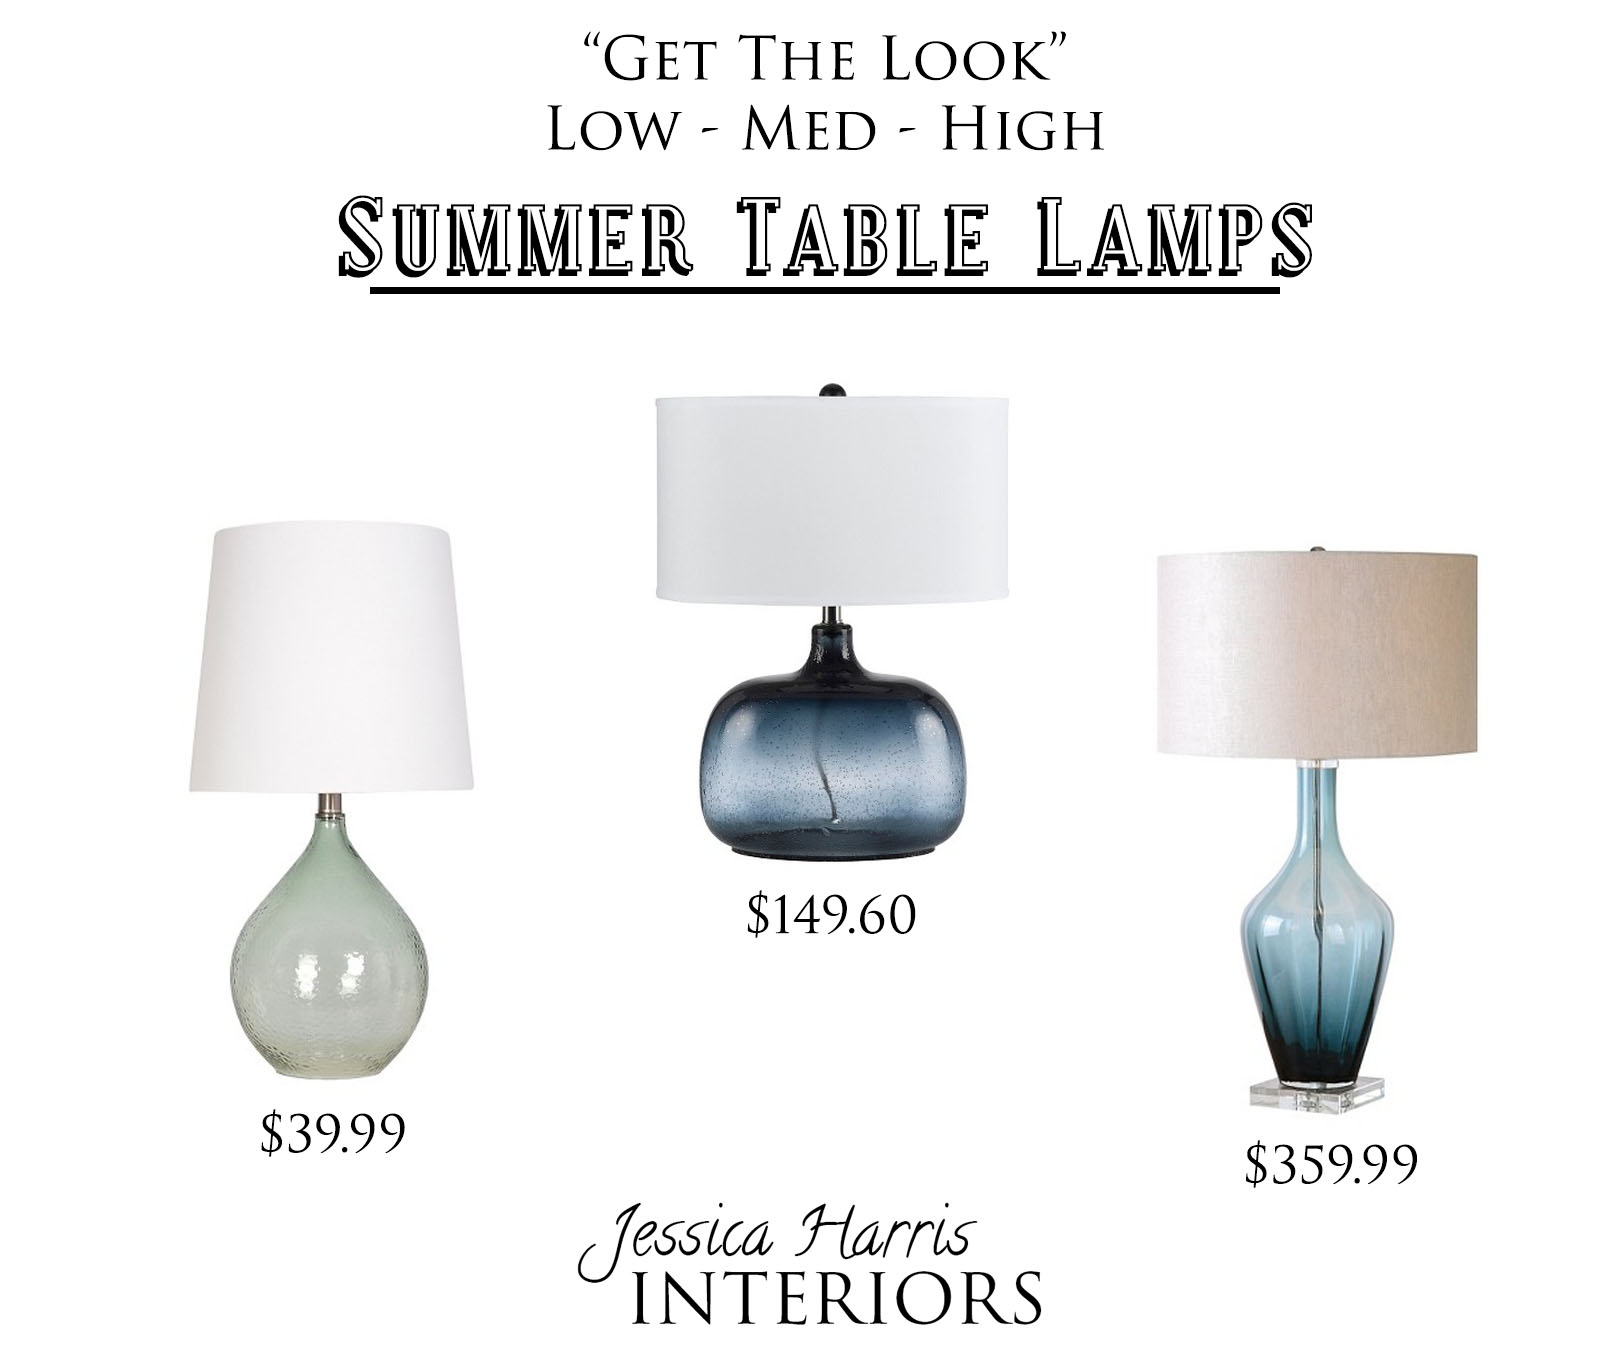 Get the Look - Summer Table Lamps.jpg